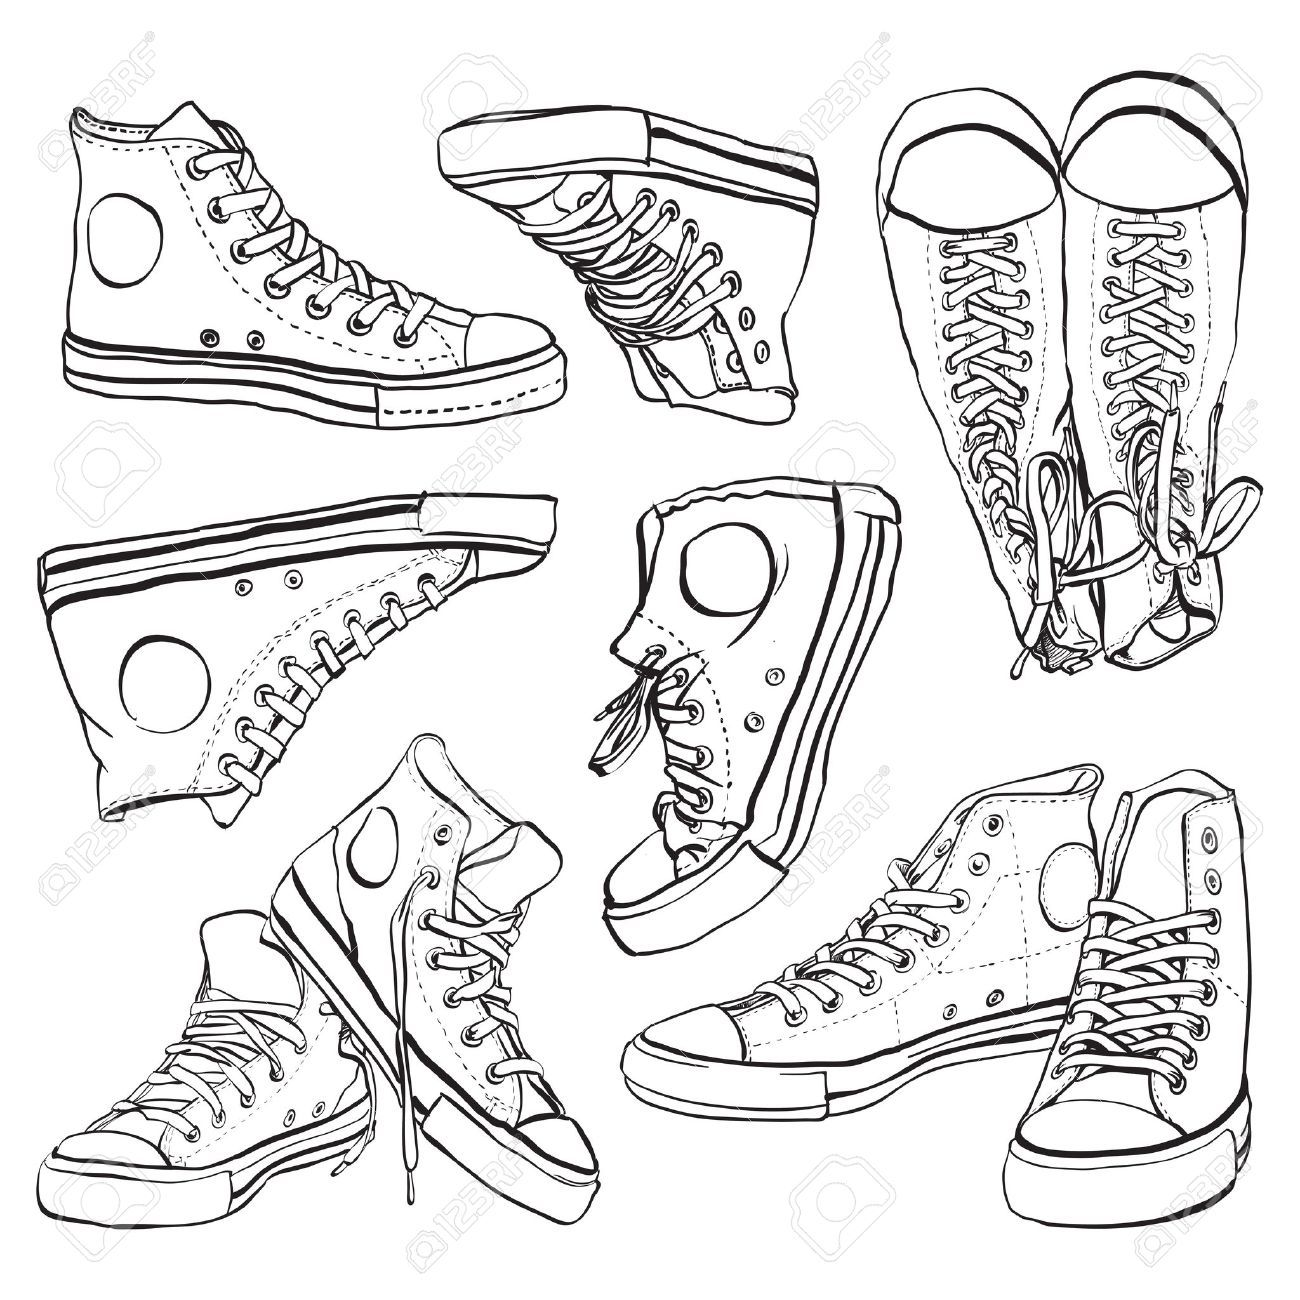 Image result for converse illustration